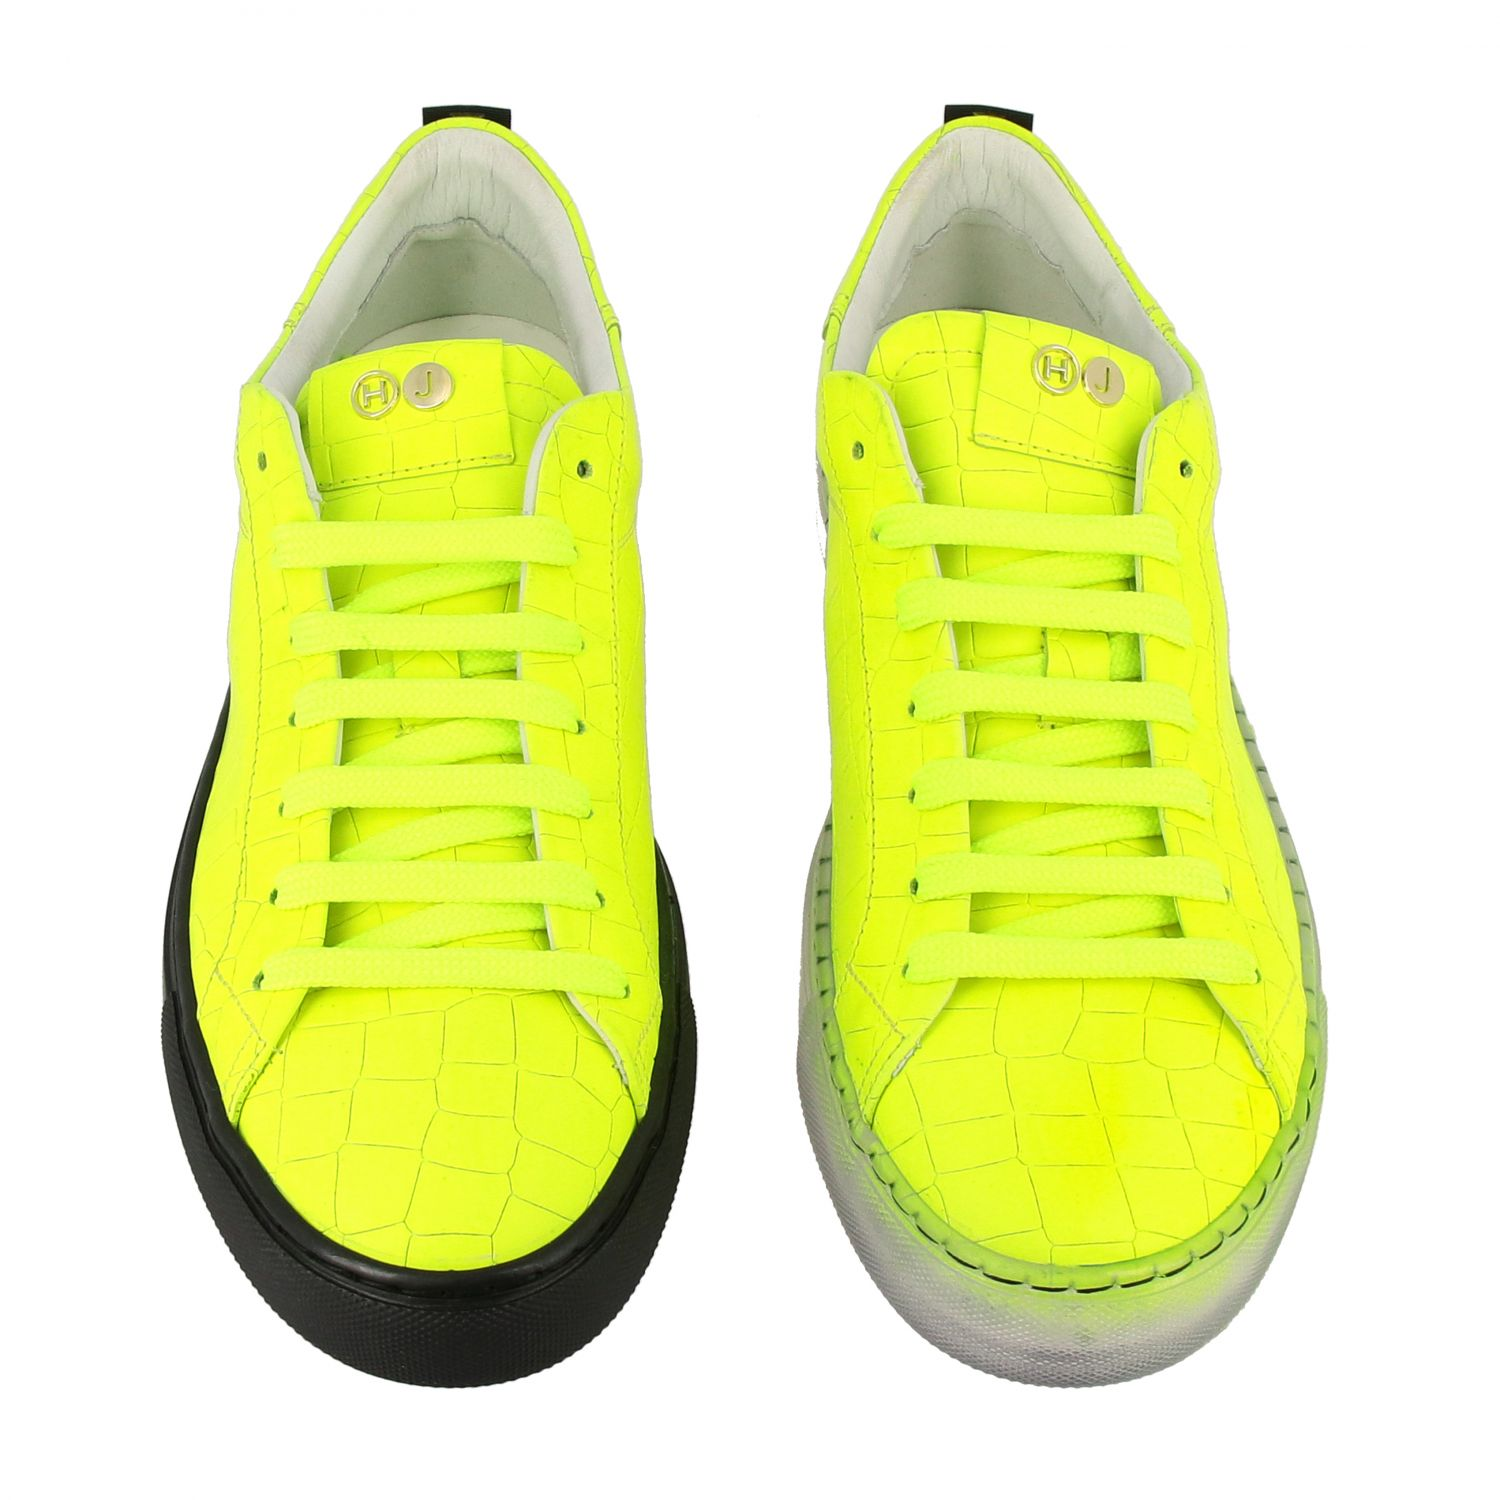 Sneakers pelle stampa cocco fluo giallo 3